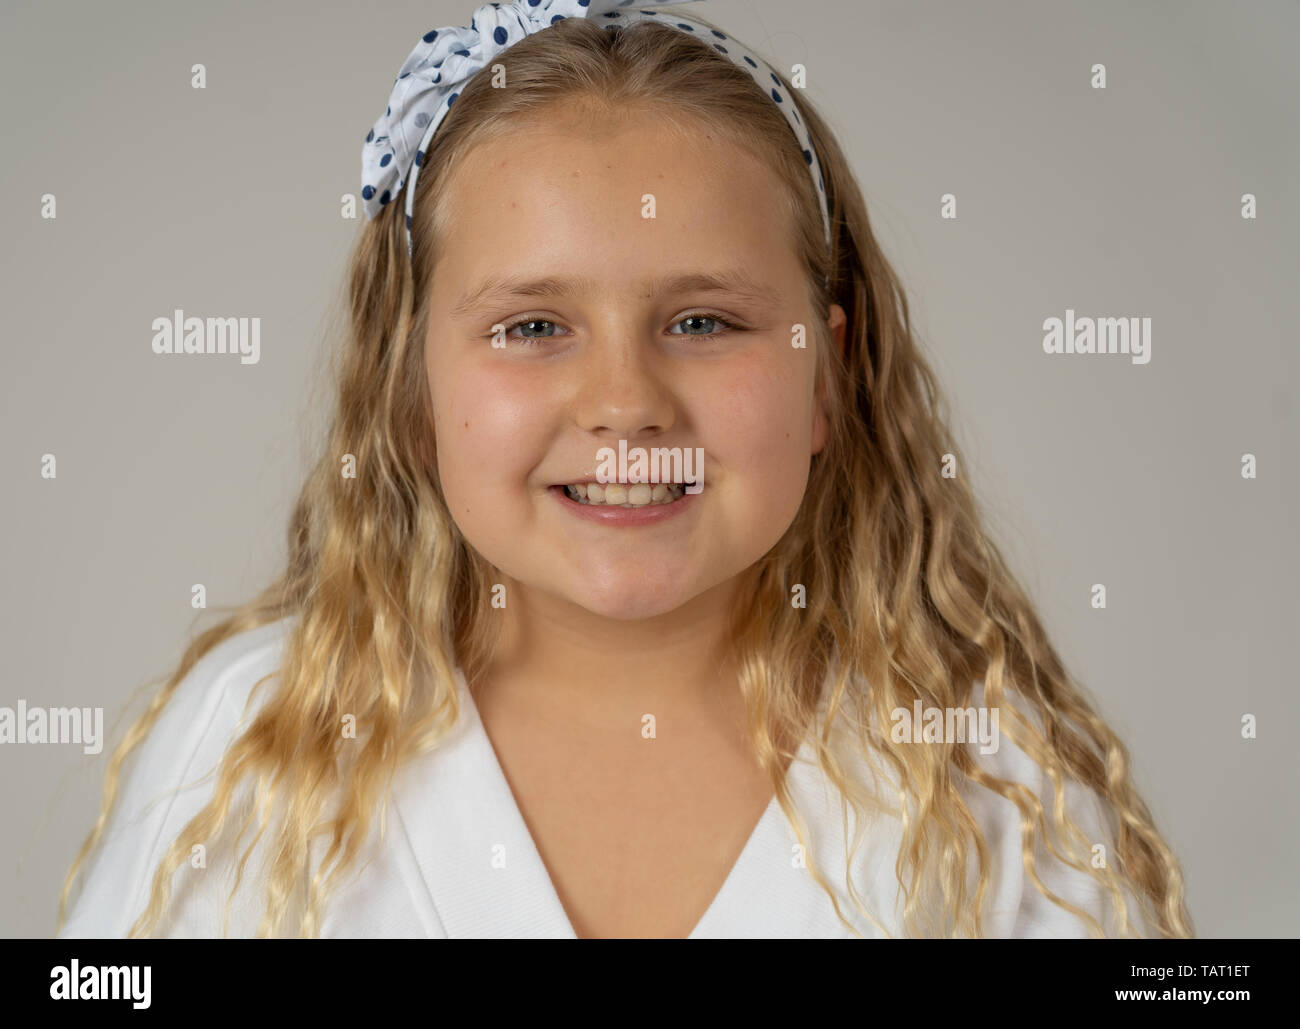 Cute charming happy excited and cheerful young kid modeling and posing with great confidence and self esteem. Close up Beauty portrait in Positive hum - Stock Image